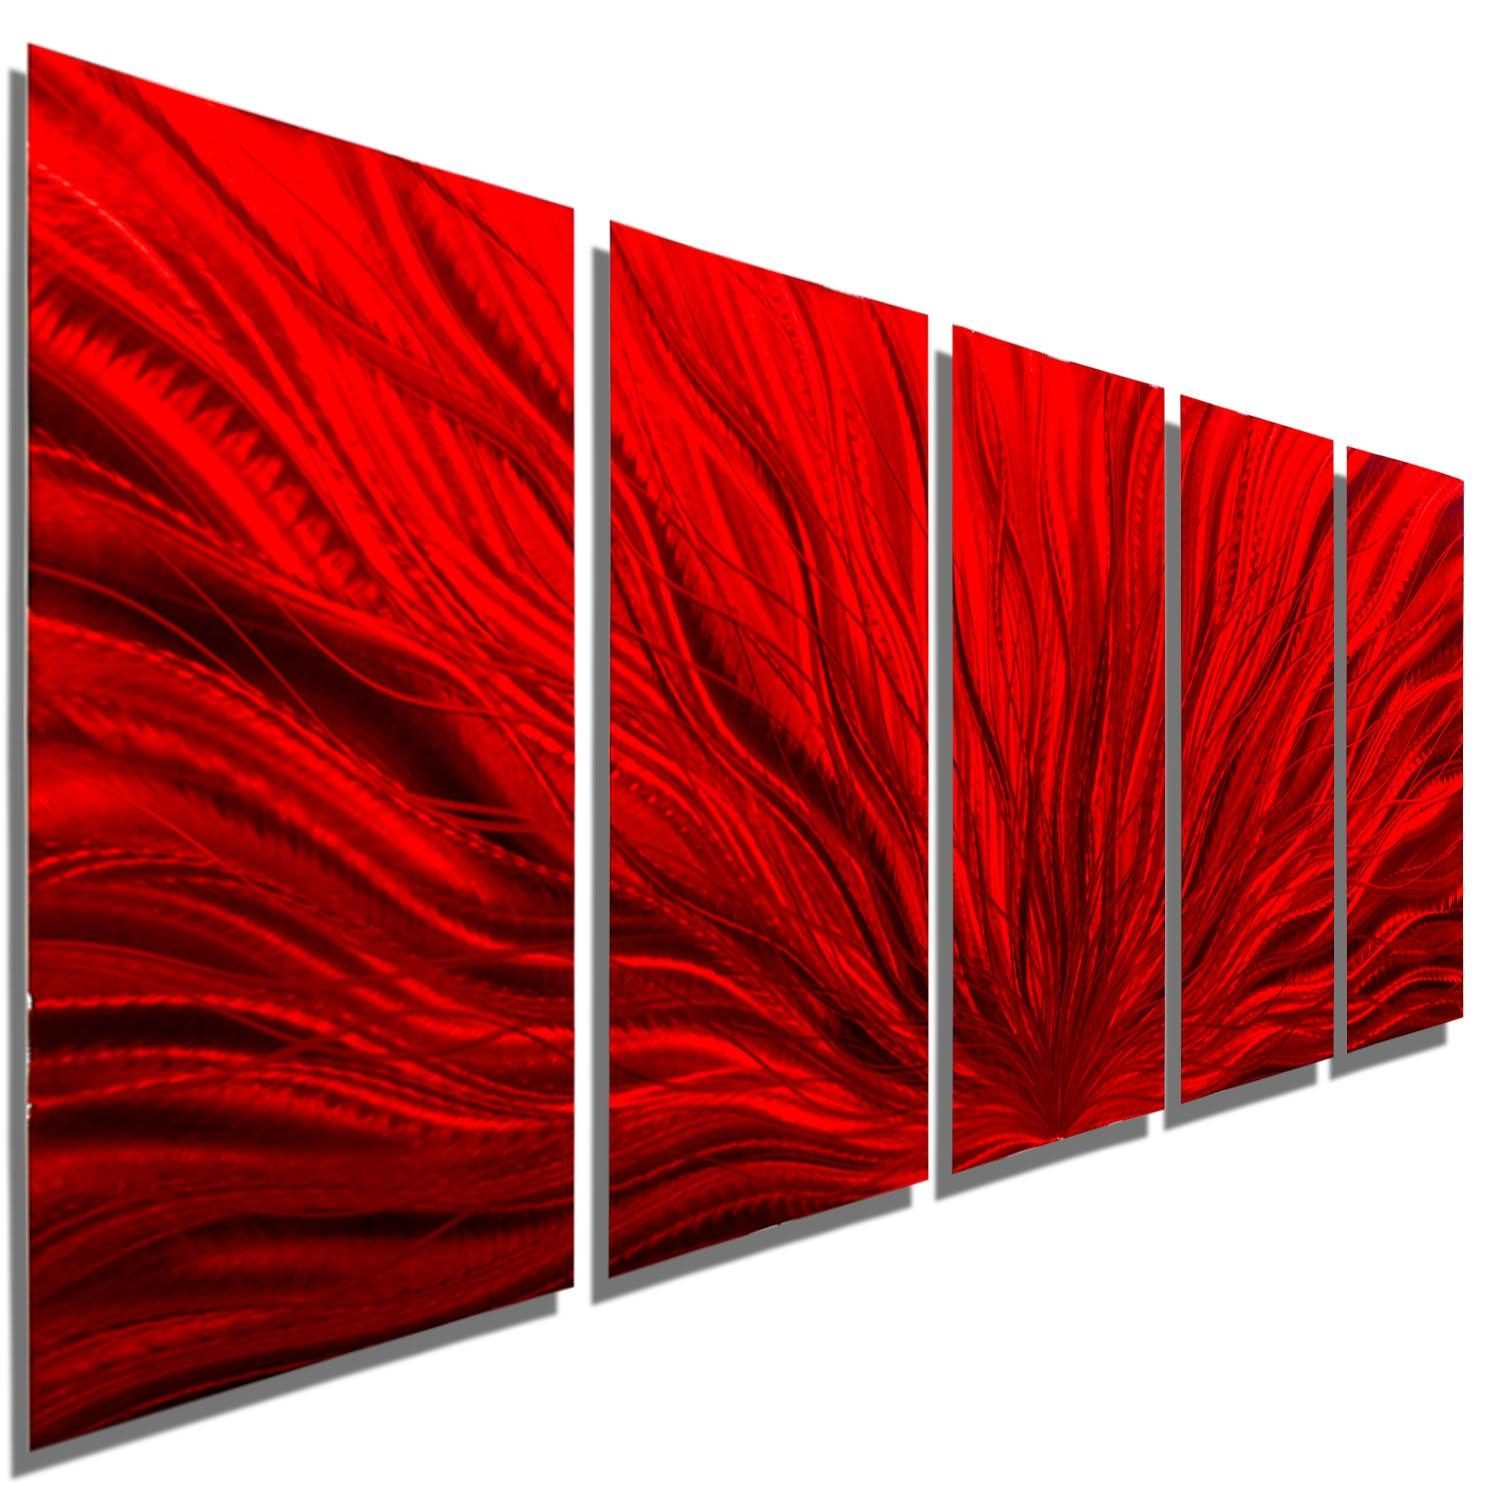 Red Plumage – Extra Large Modern Abstract Metal Wall Artjon Throughout Large Abstract Metal Wall Art (View 5 of 20)